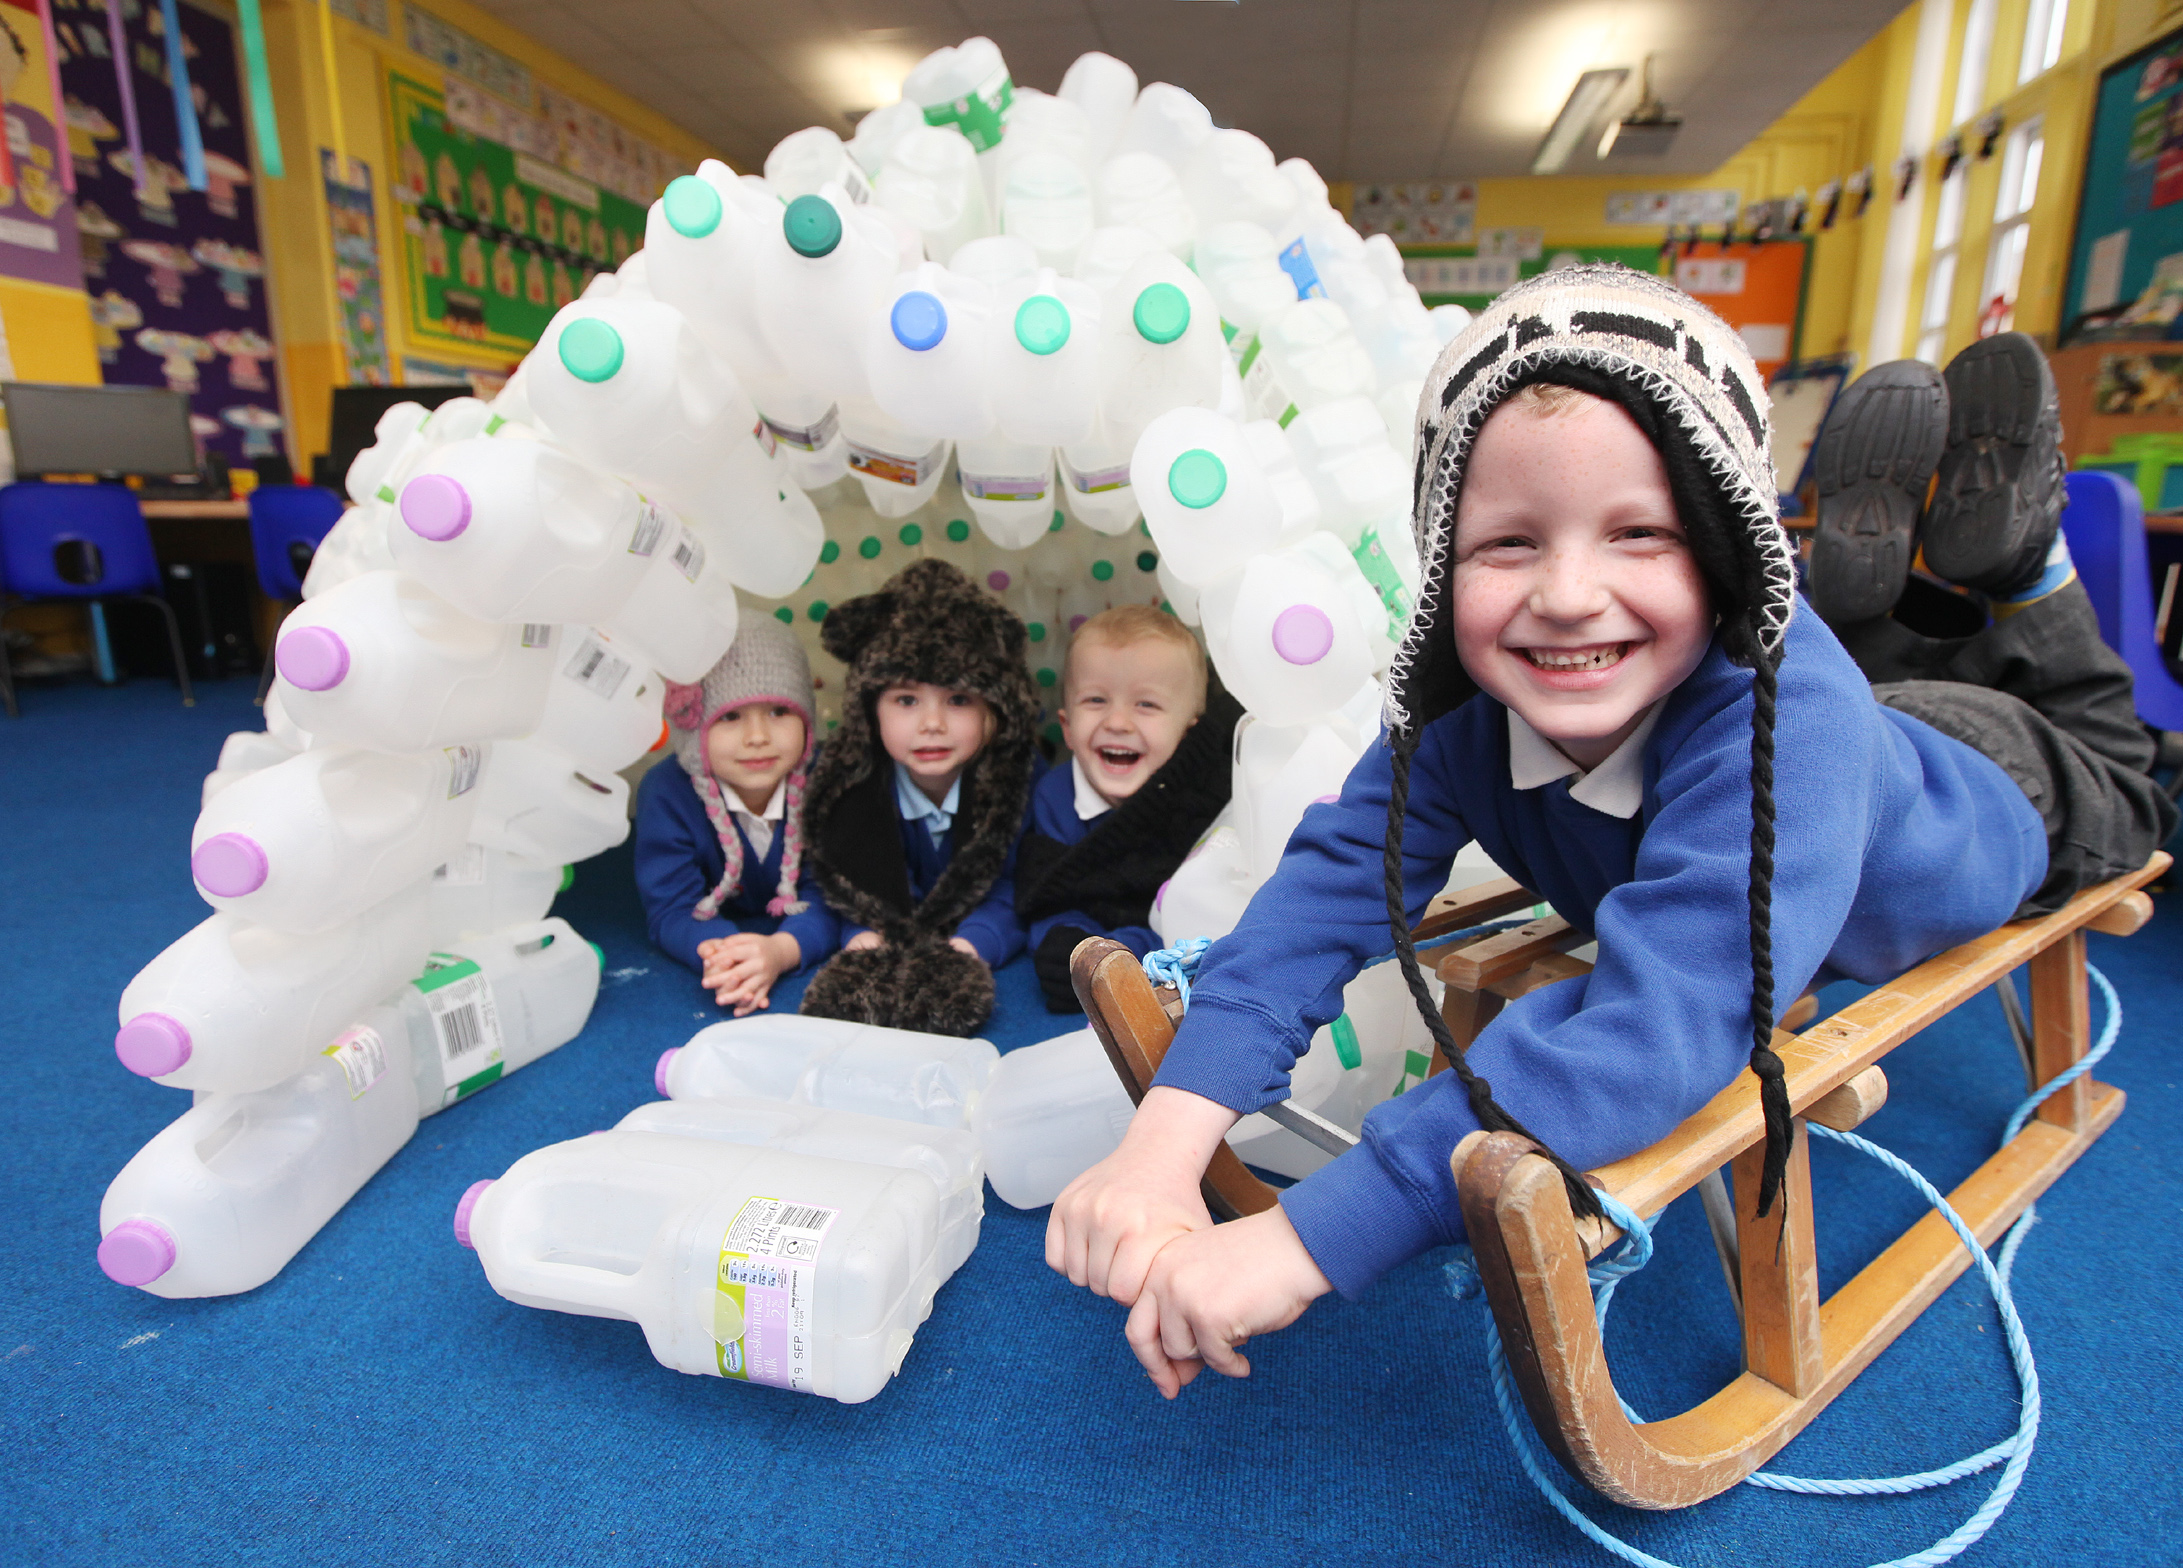 Christ Church Primary School pupils Hania Keska, Rosie Fawcett, Dylan Clos and Alfie Loudon take a close look at the igloo